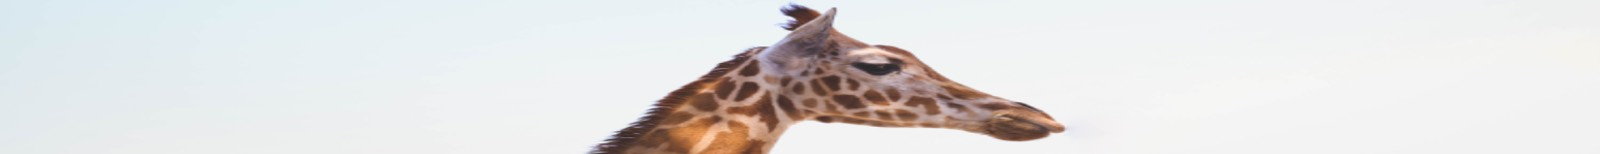 Giraffe head panoramic